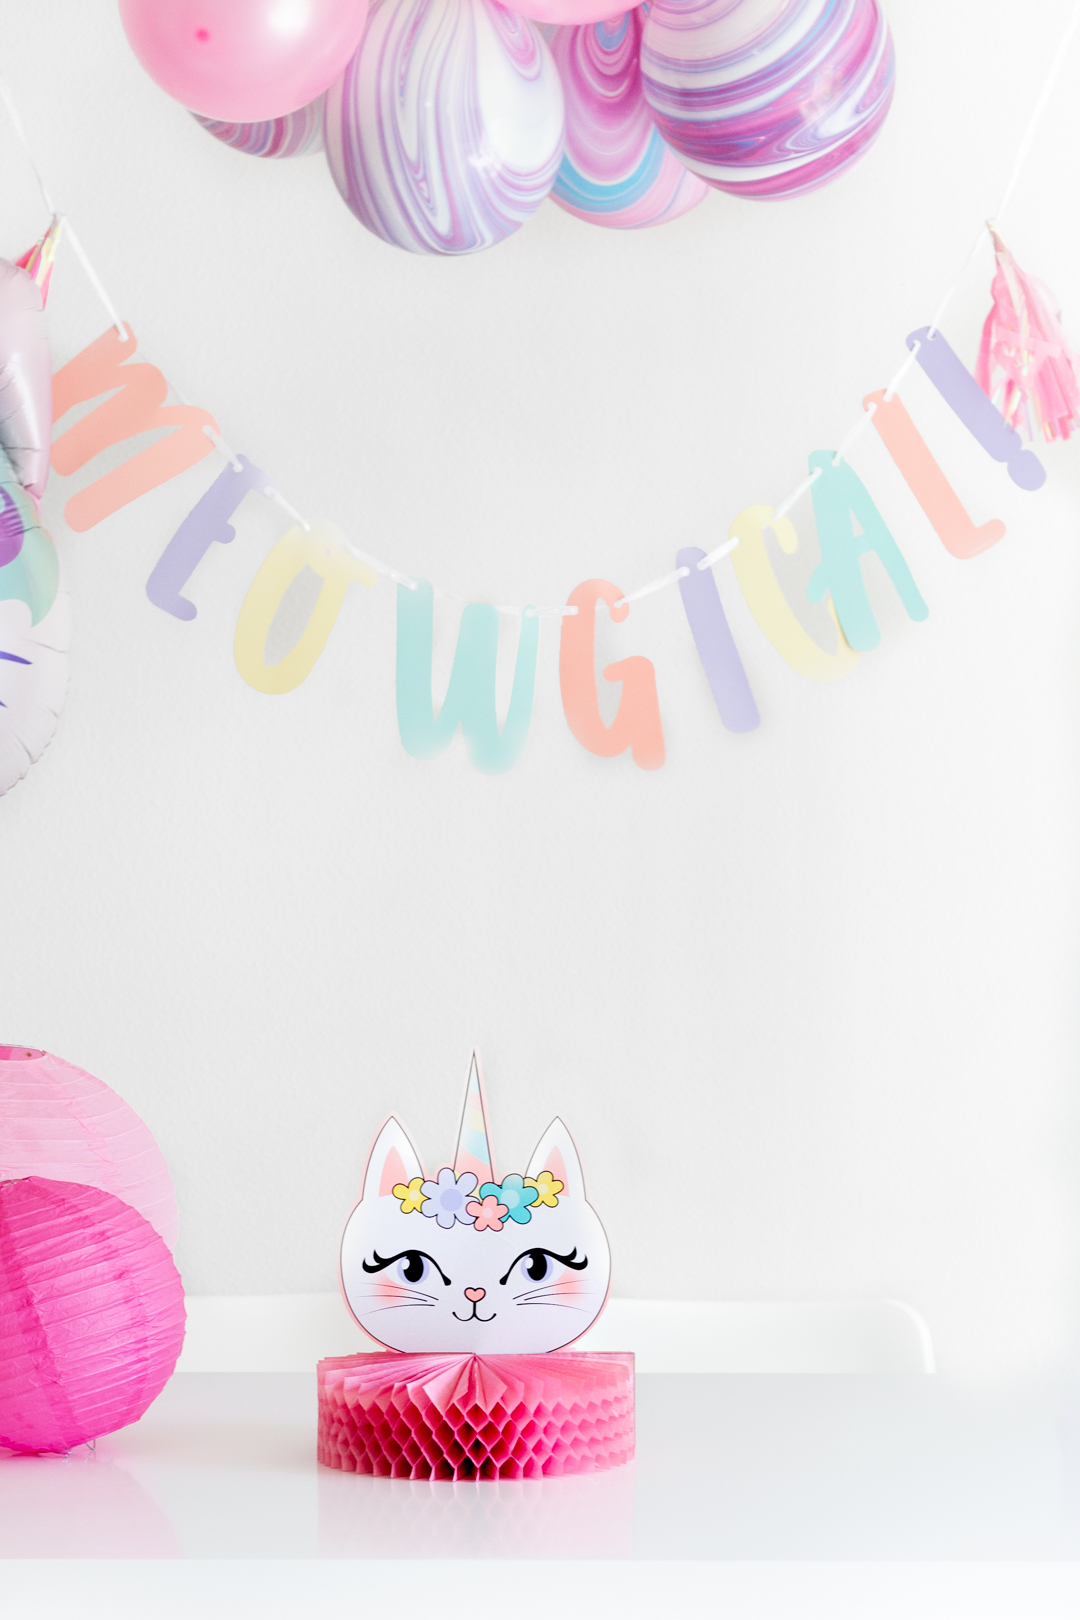 meowgical banner for a caticorn party. marbled pastel balloons.